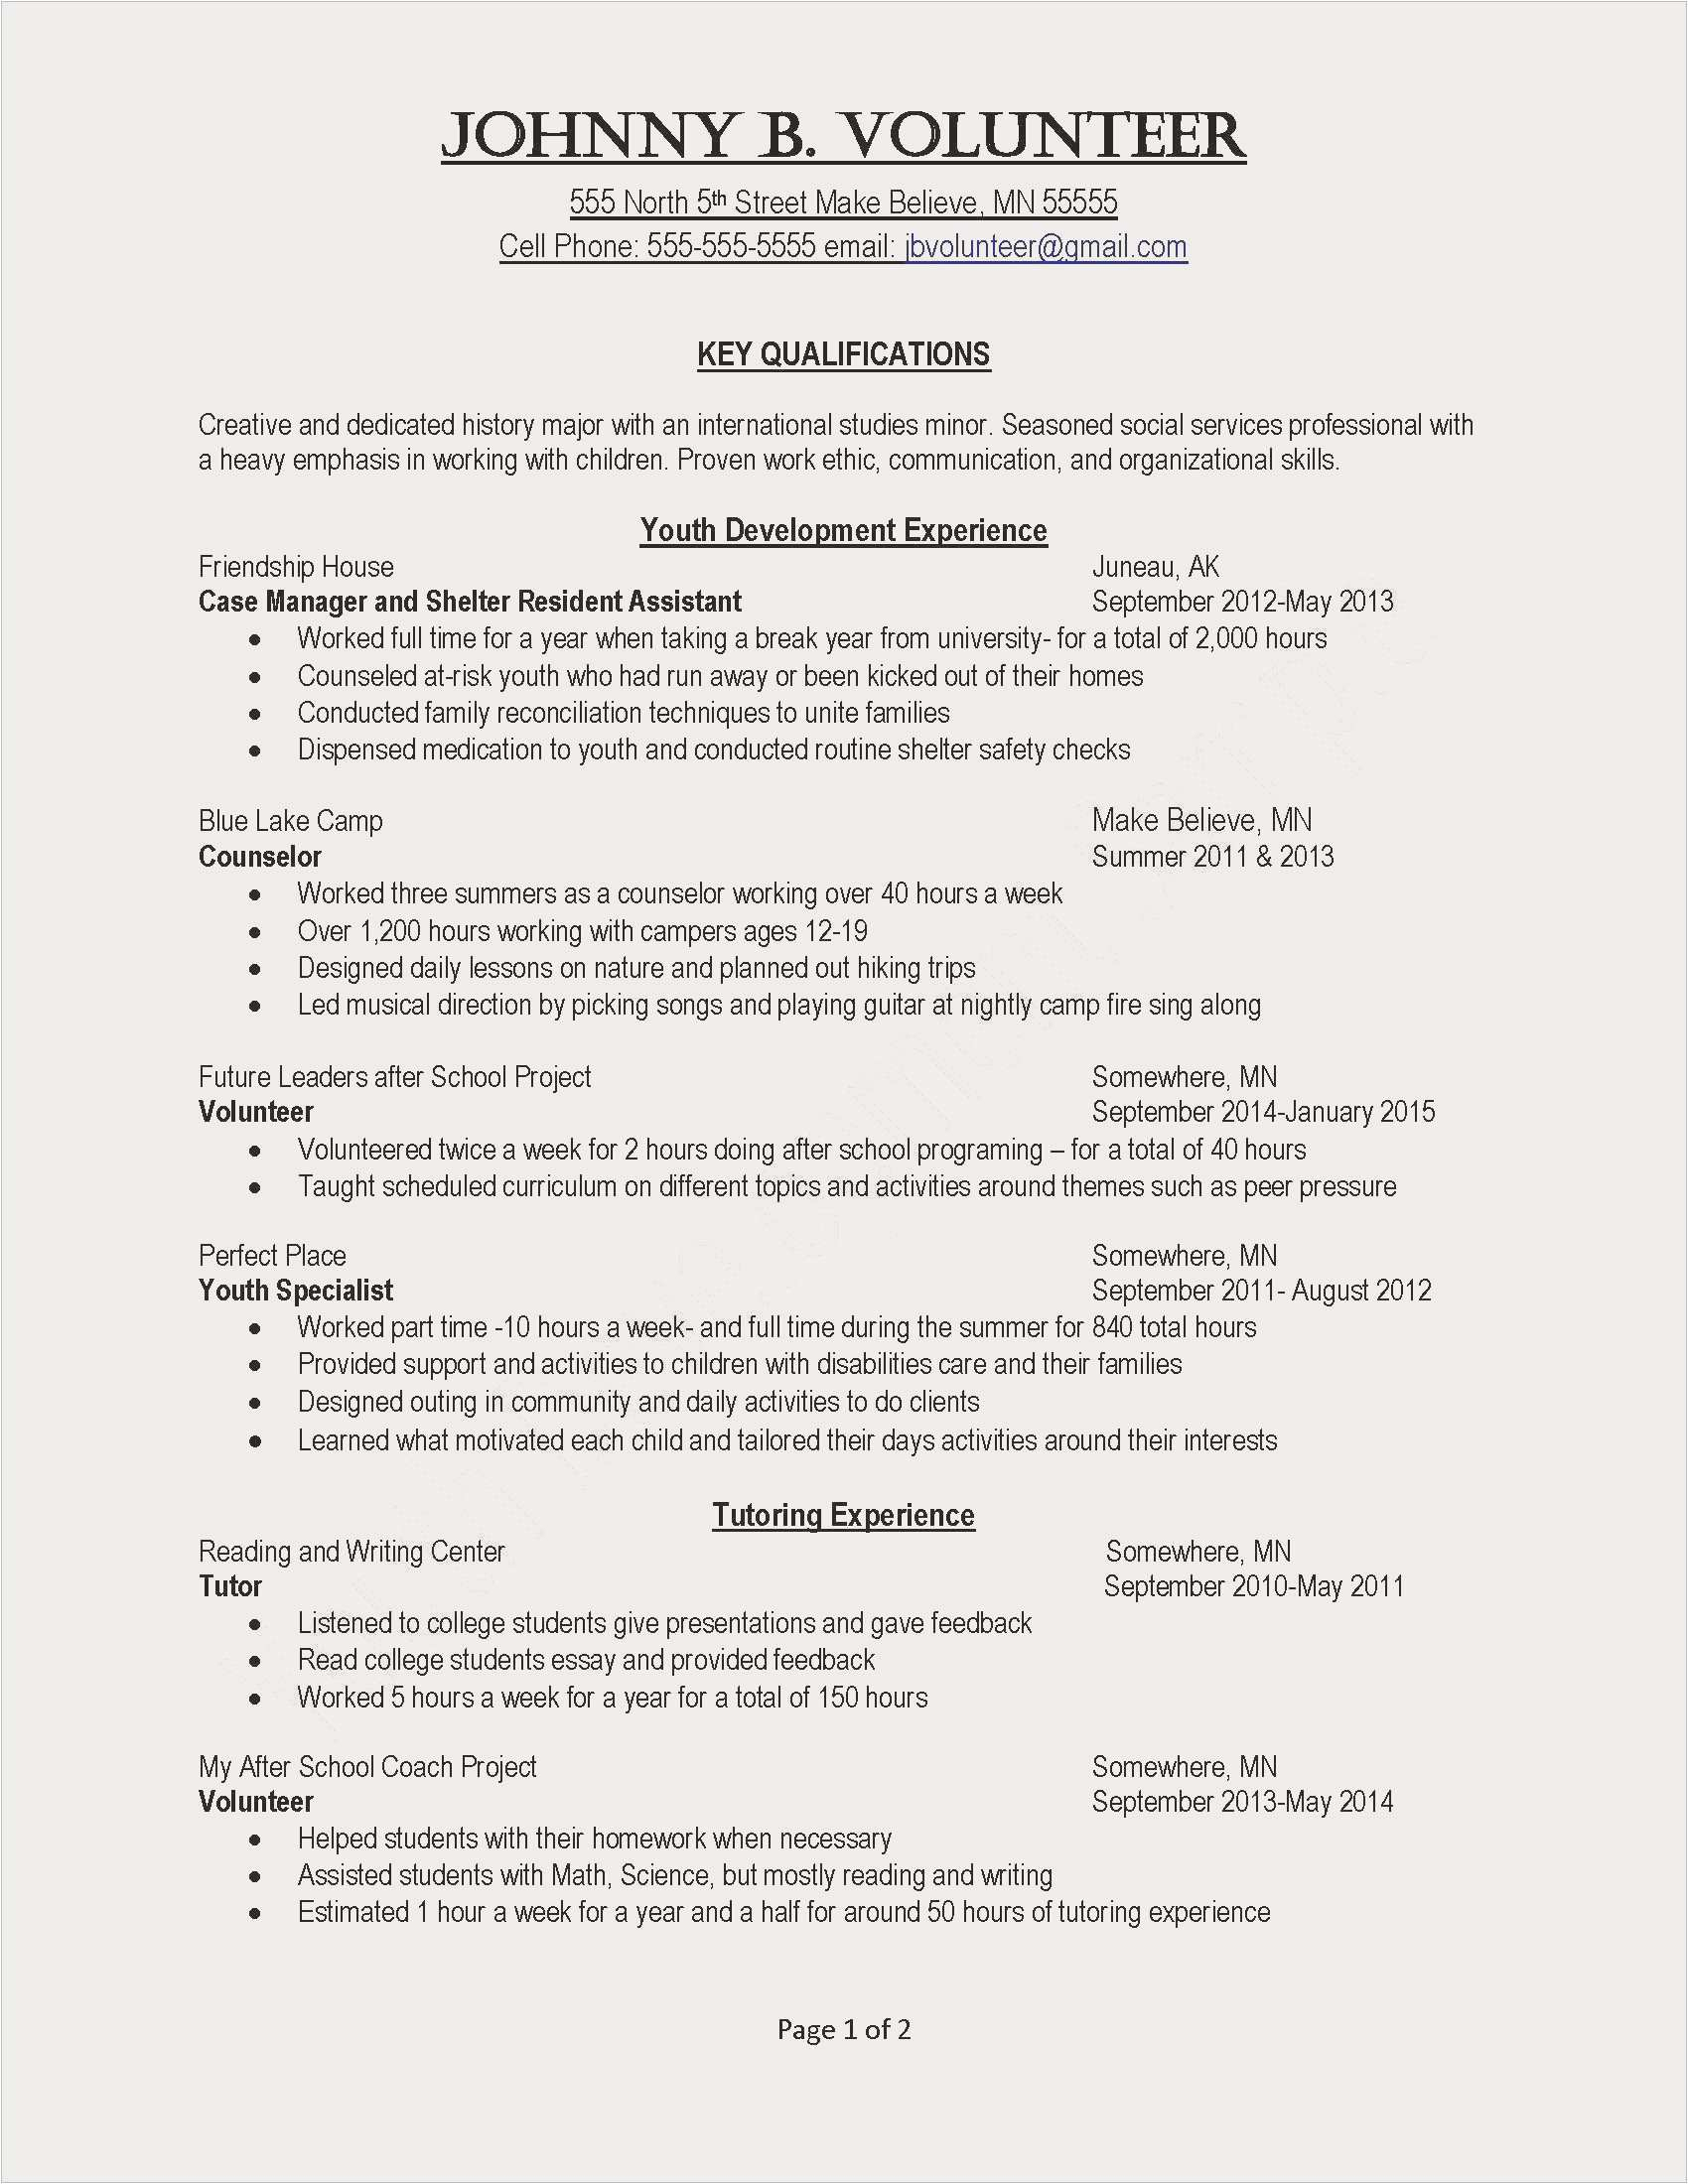 Sample Resumes for College Students - Resumes for College Students Simple Unique Internship Resume Sample